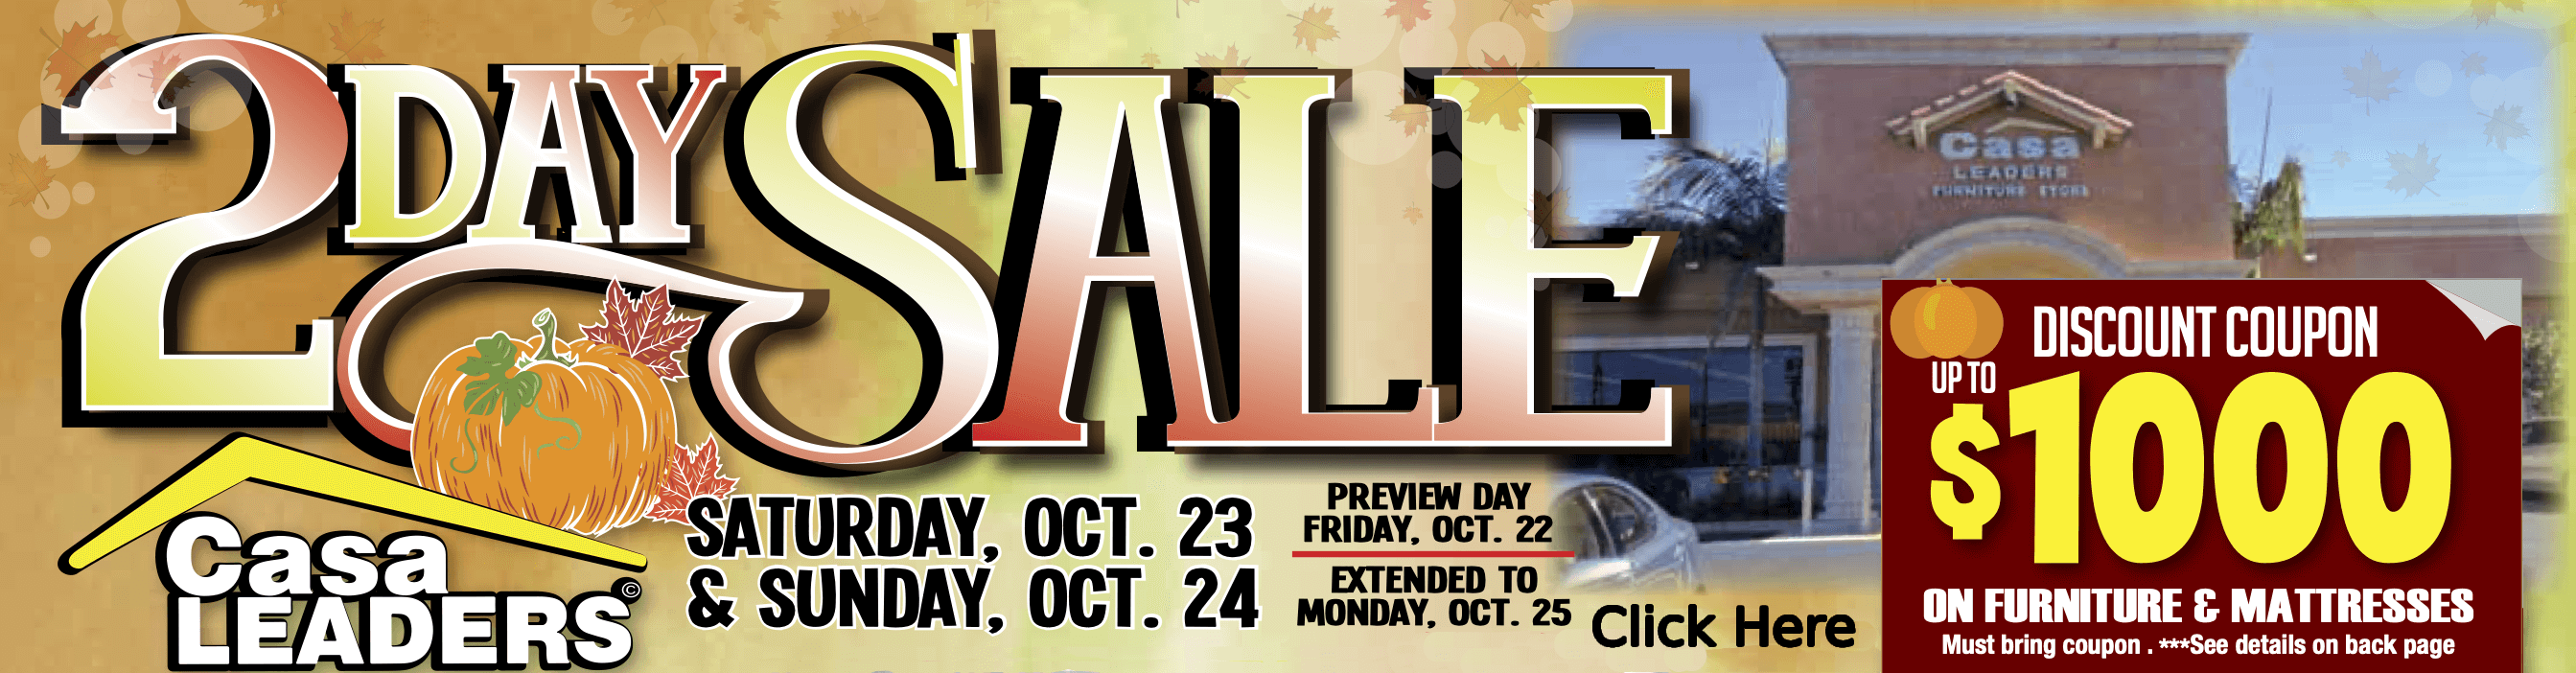 2 Day Sale at Casa Leaders Oct 22-25 2021 mailer header image with $1000 coupon, details apply.